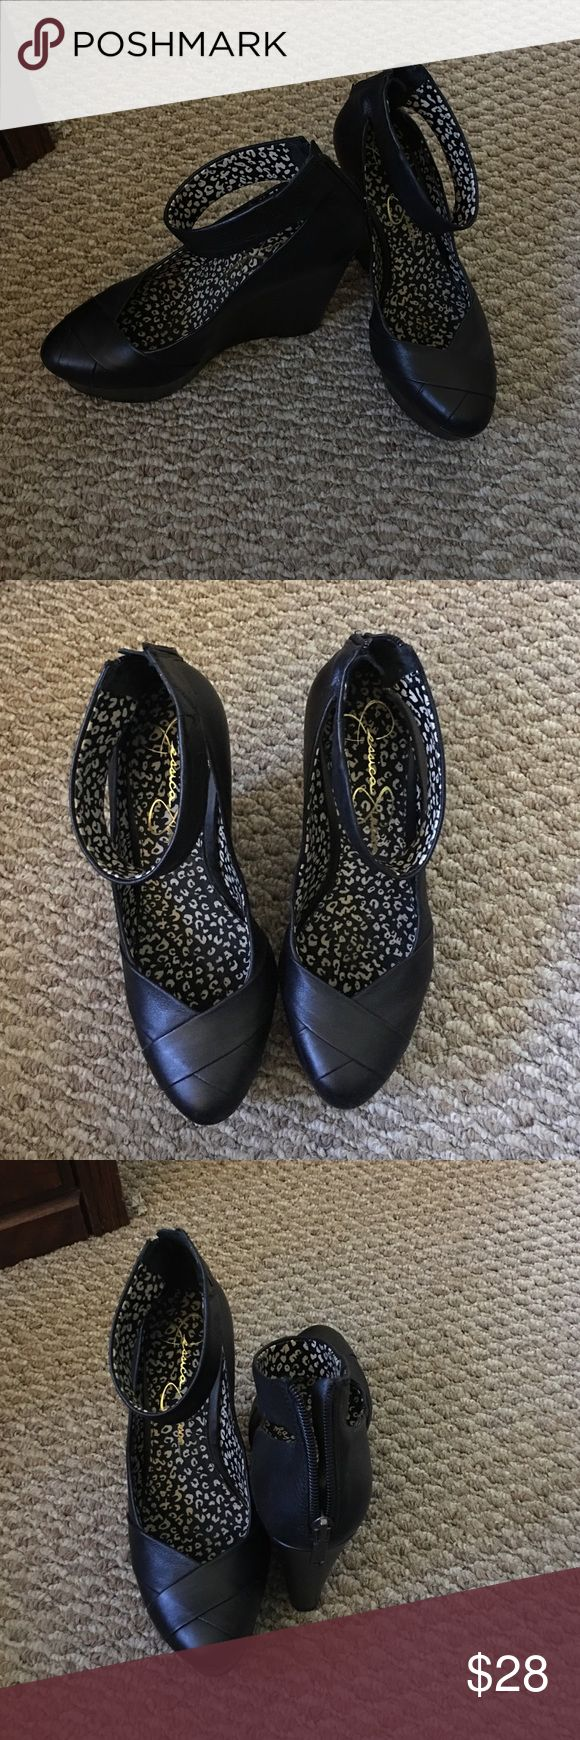 Jessica Simpson sz 7 wedges Excellent like new wedges by Jessica Simpson. Cute ankle strap and back zip up. Size 7. I just can't wear this heel height anymore 😫 Jessica Simpson Shoes Wedges